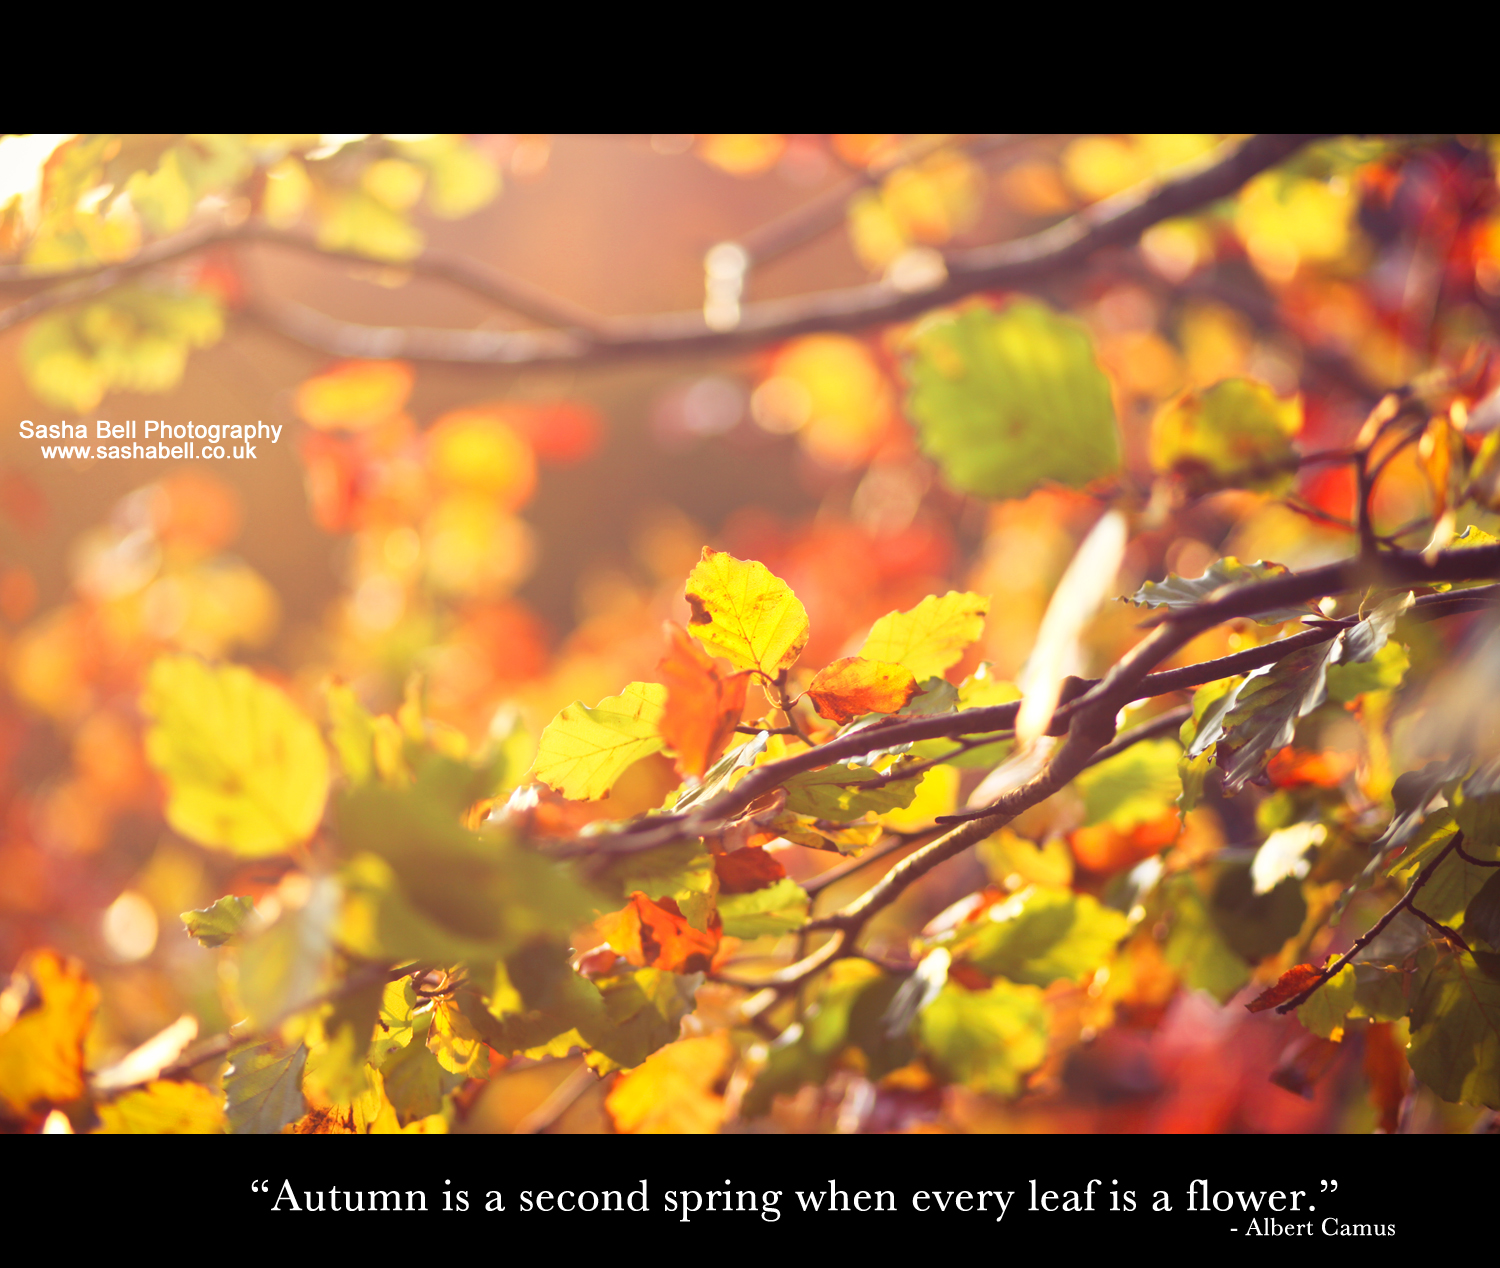 """Autumn is a second spring when every leaf is a flower"""